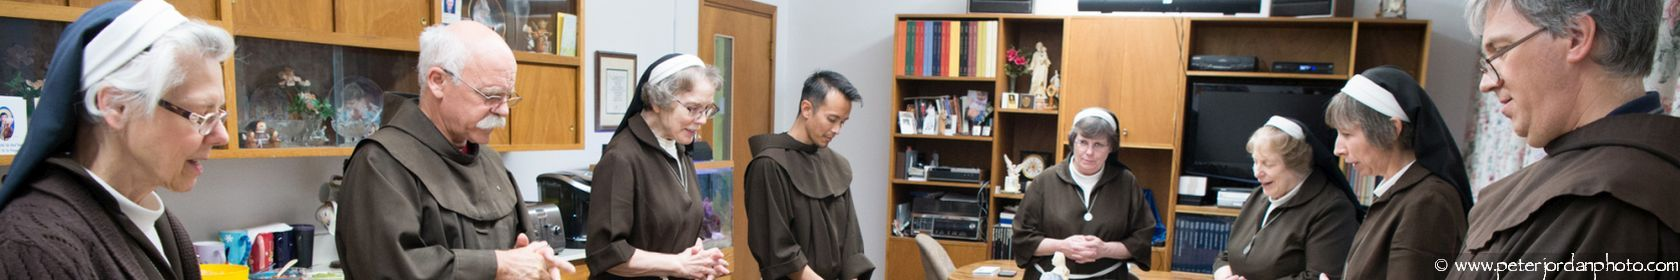 Our Franciscan Family